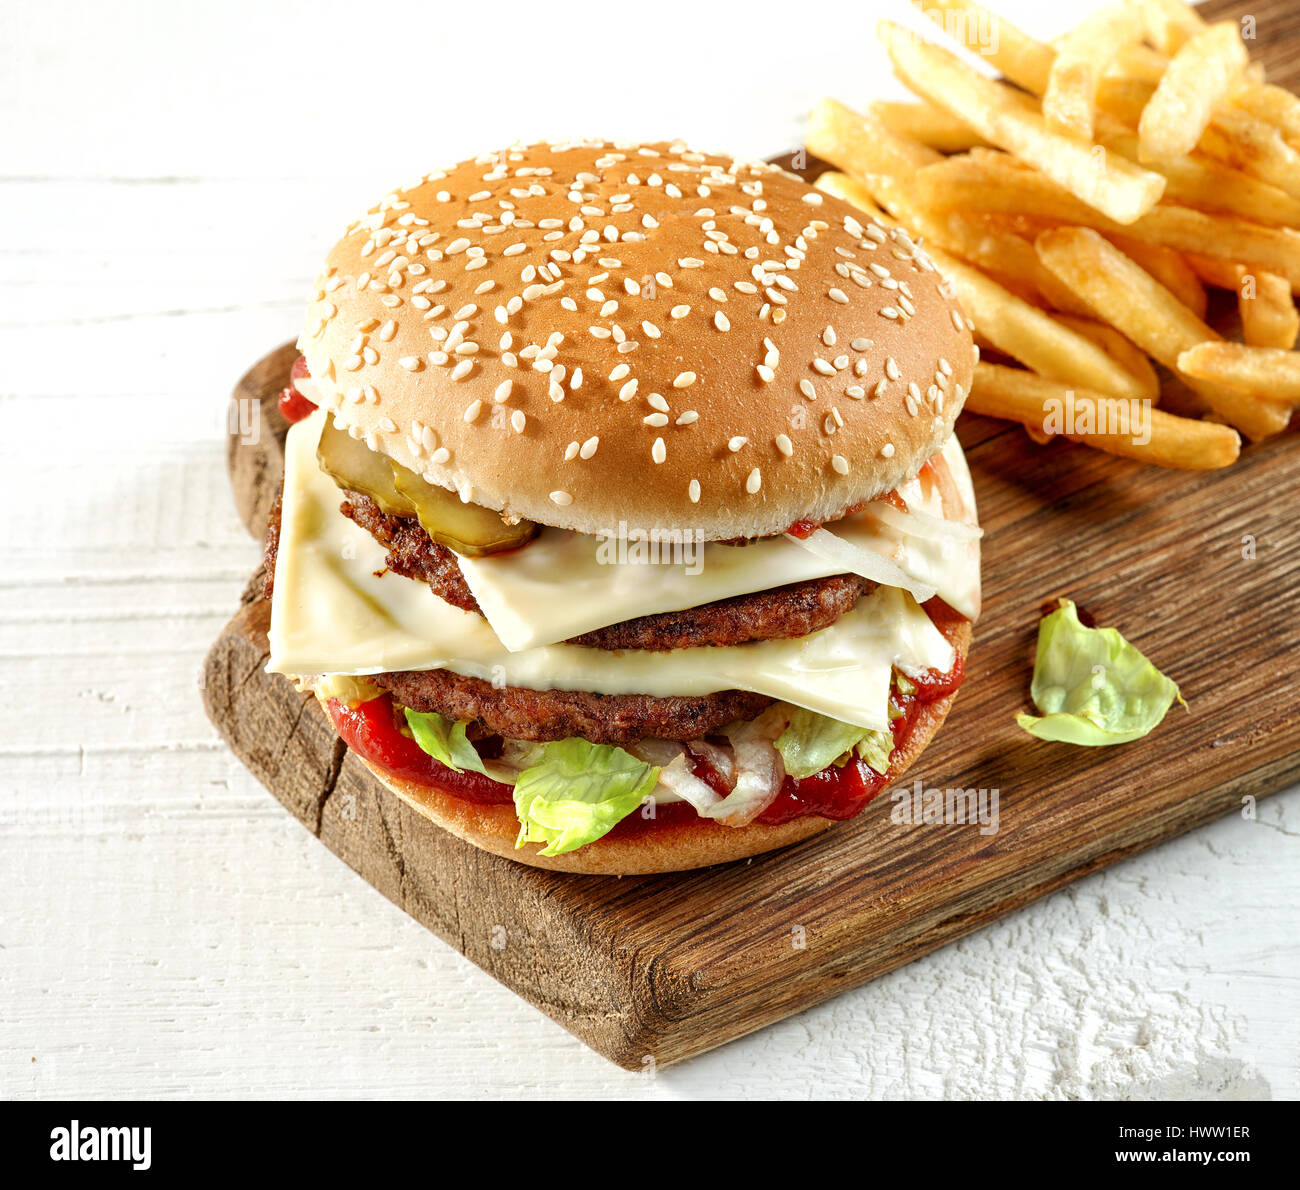 fresh tasty burger on wooden cutting board, top view - Stock Image